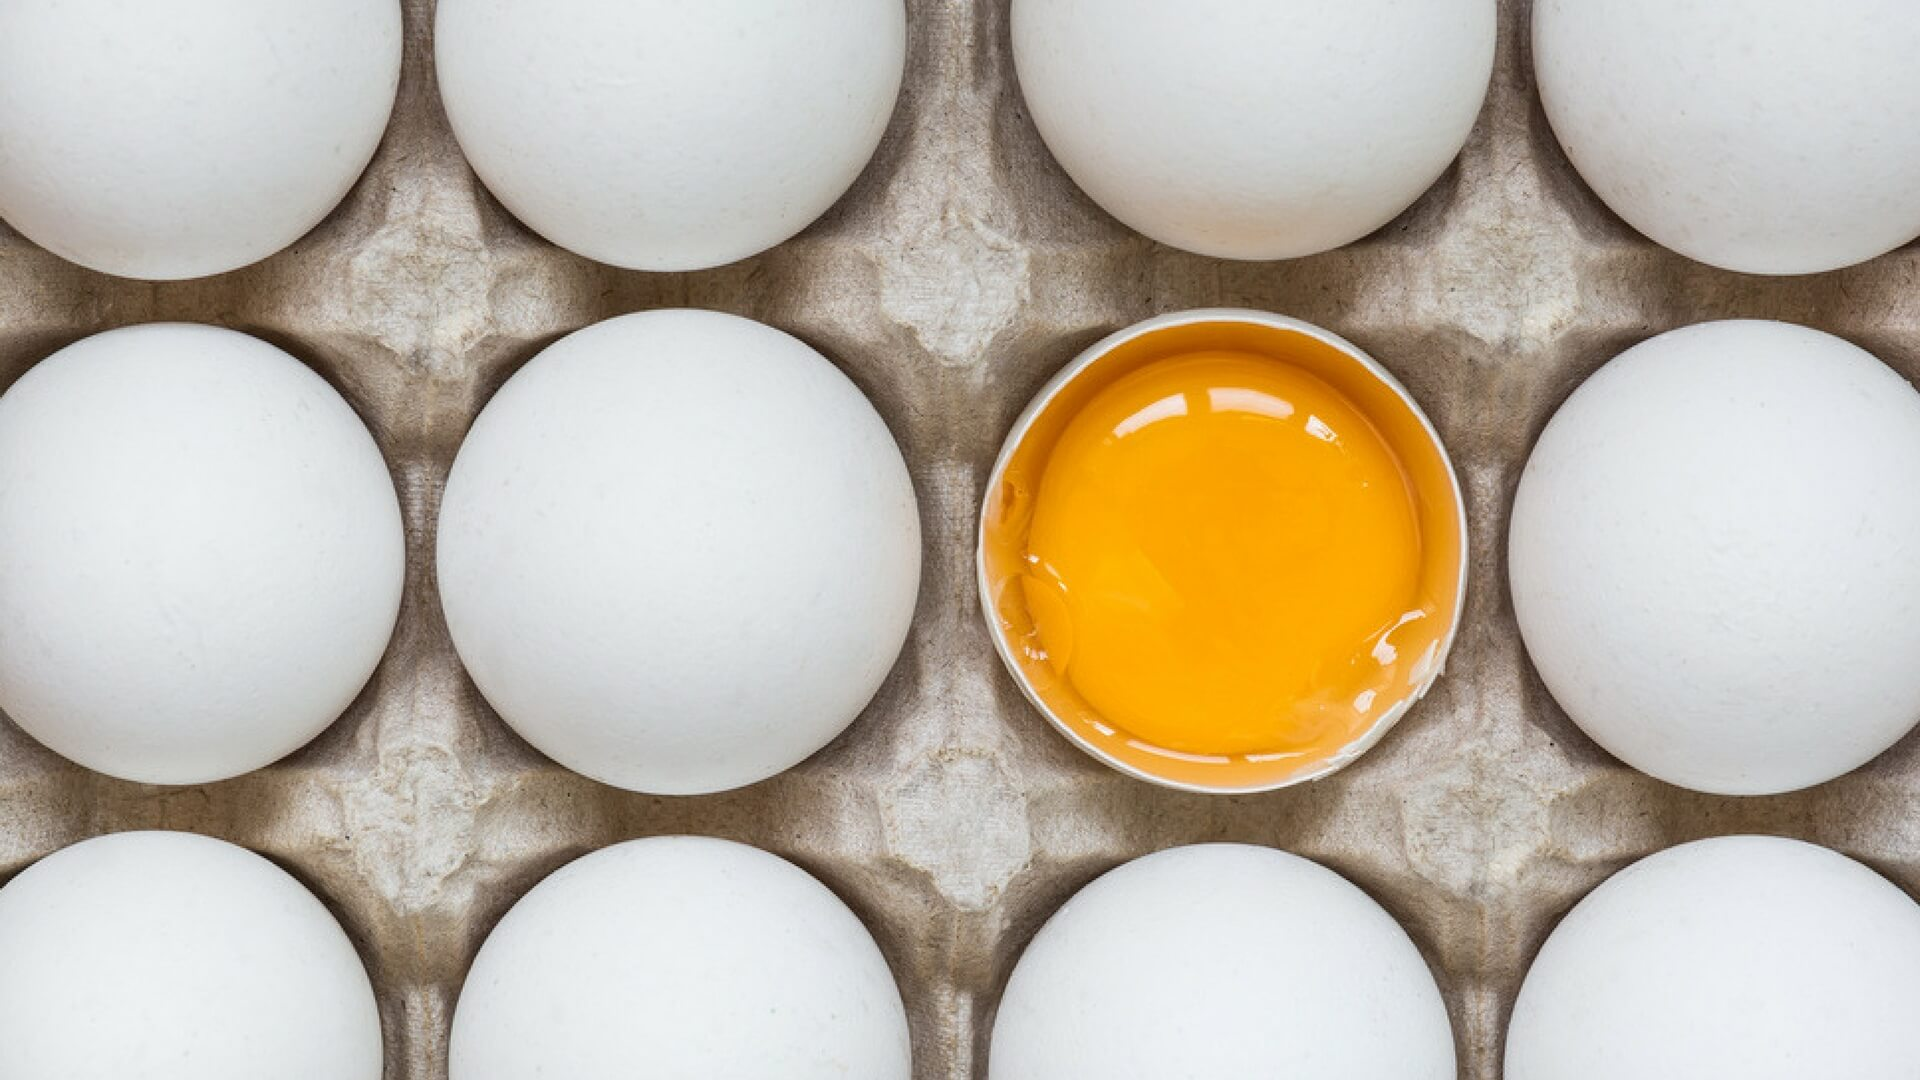 The truth about eggs and cholesterol